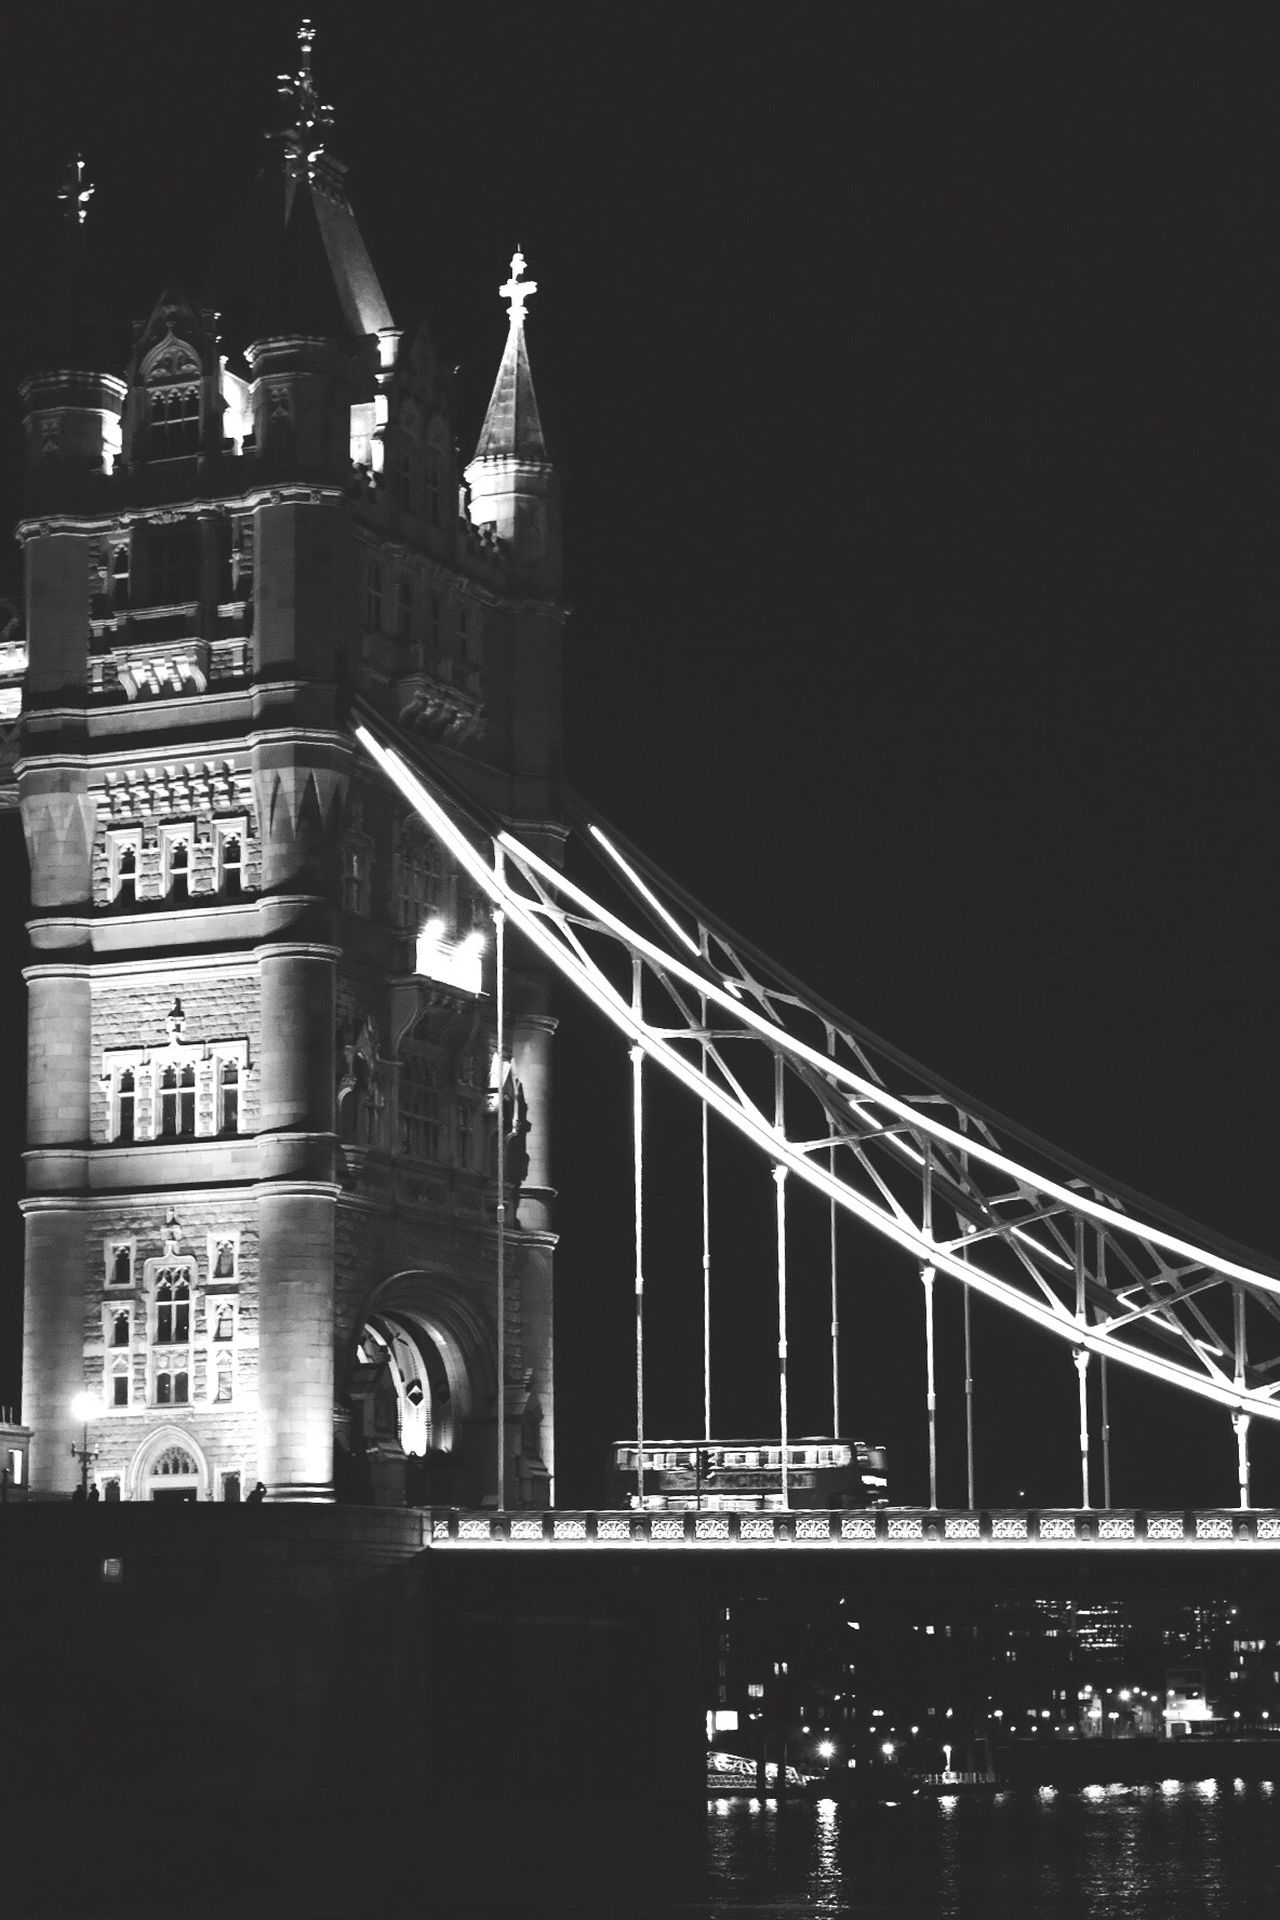 Tower Bridge, London Architecture Bridge - Man Made Structure Connection Night Engineering Suspension Bridge Built Structure Transportation Illuminated Travel Destinations Outdoors Travel Low Angle View Building Exterior No People Clear Sky Sky City Chain Bridge